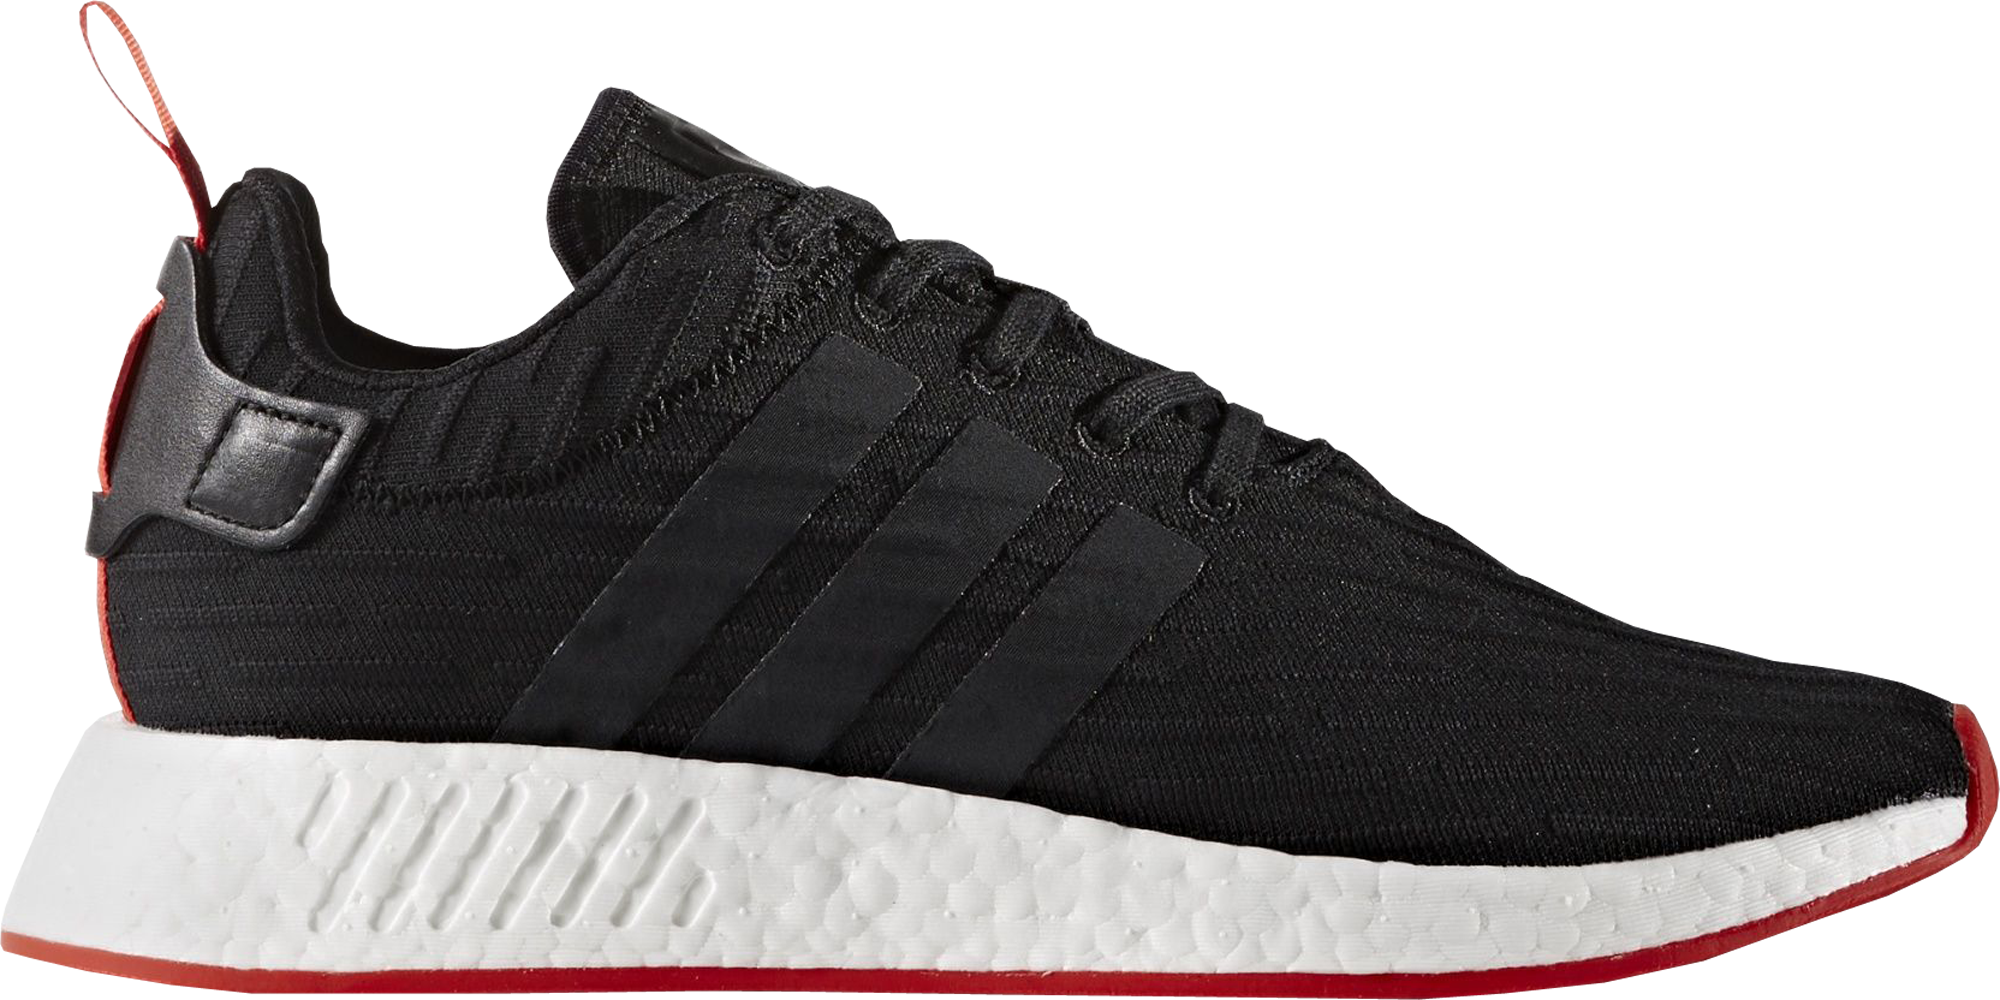 adidas NMD R2 Shoes - Average Sale Price